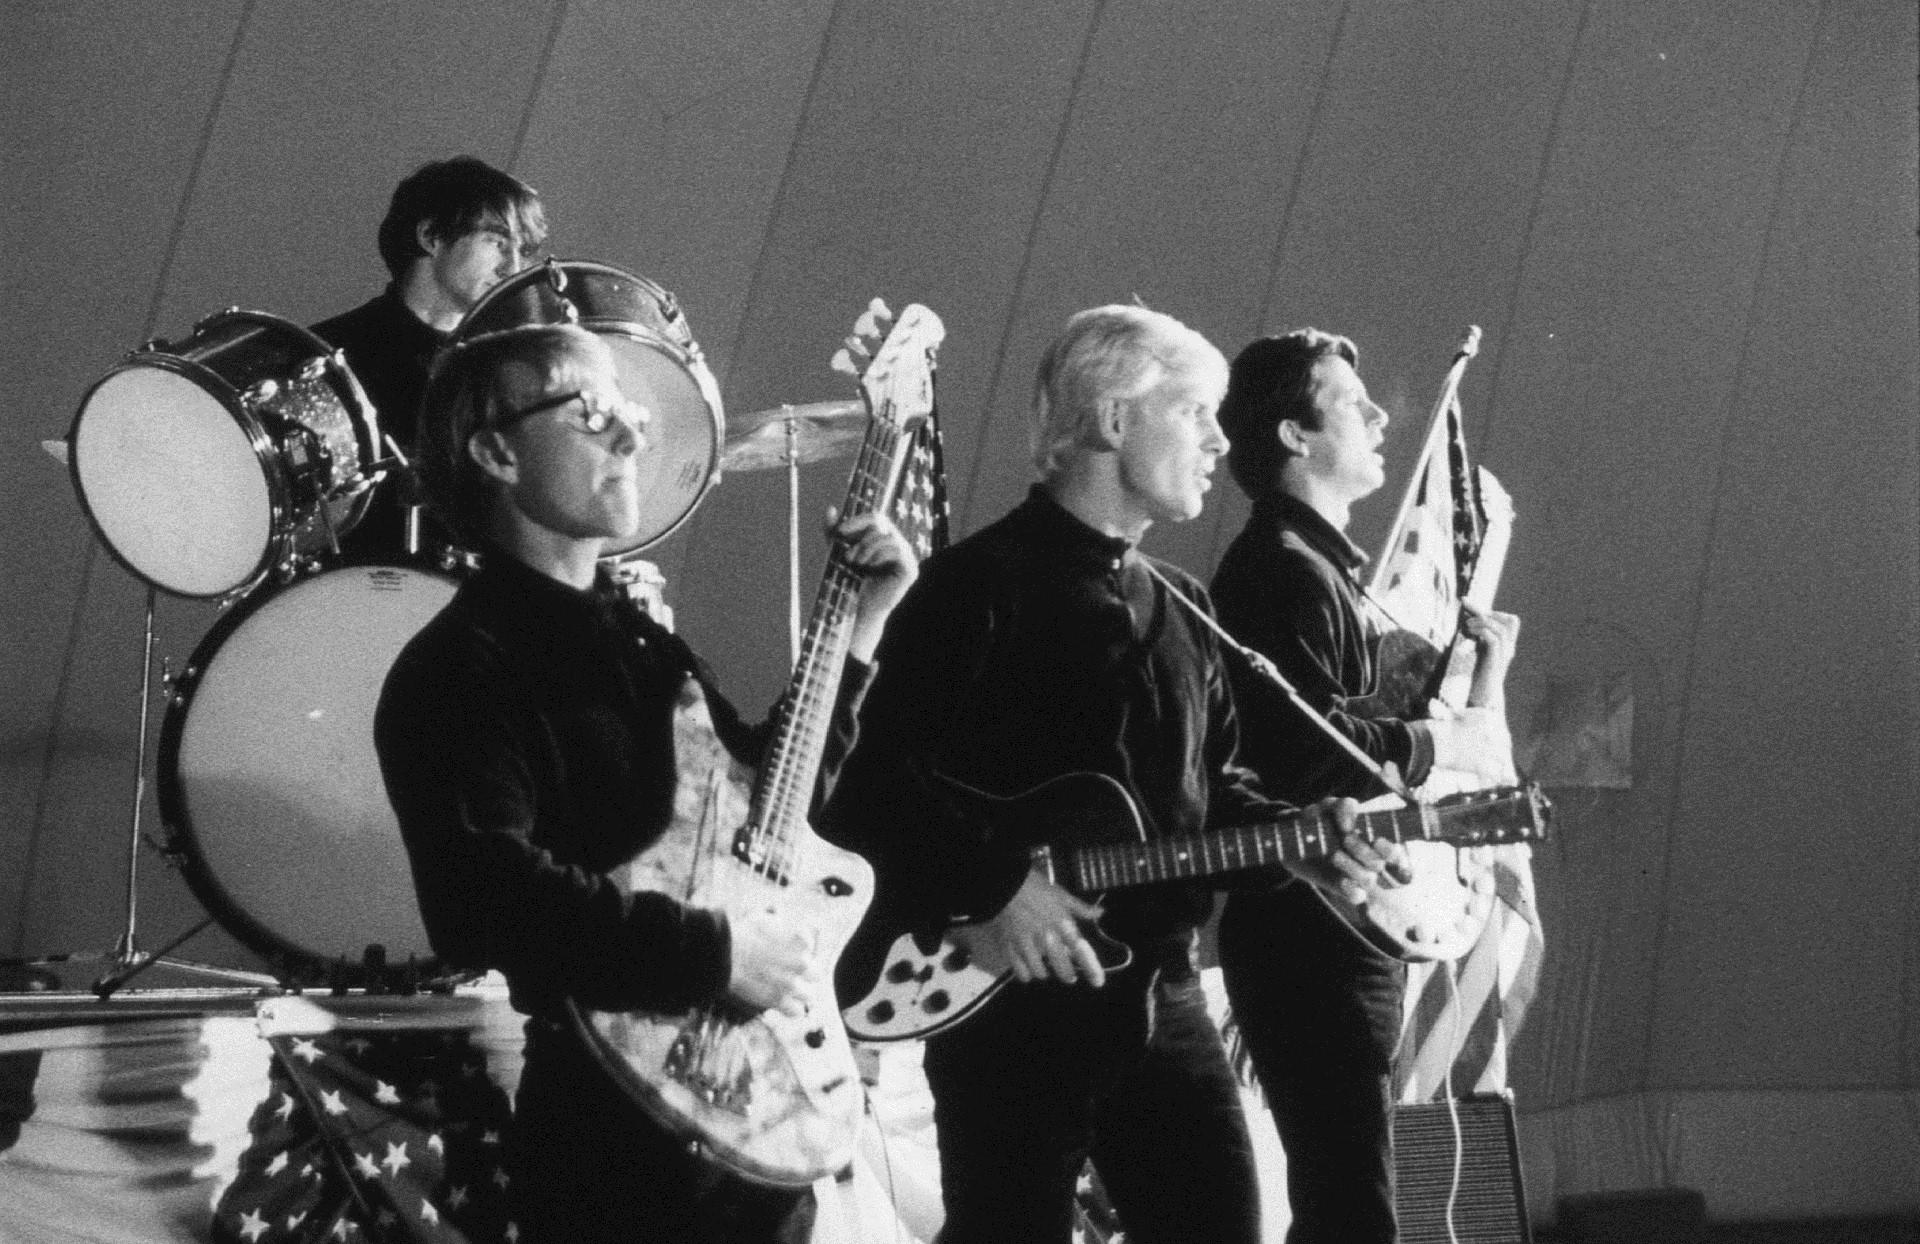 A rock band, comprised of four young men, is playing in the insides of the plastic dome.